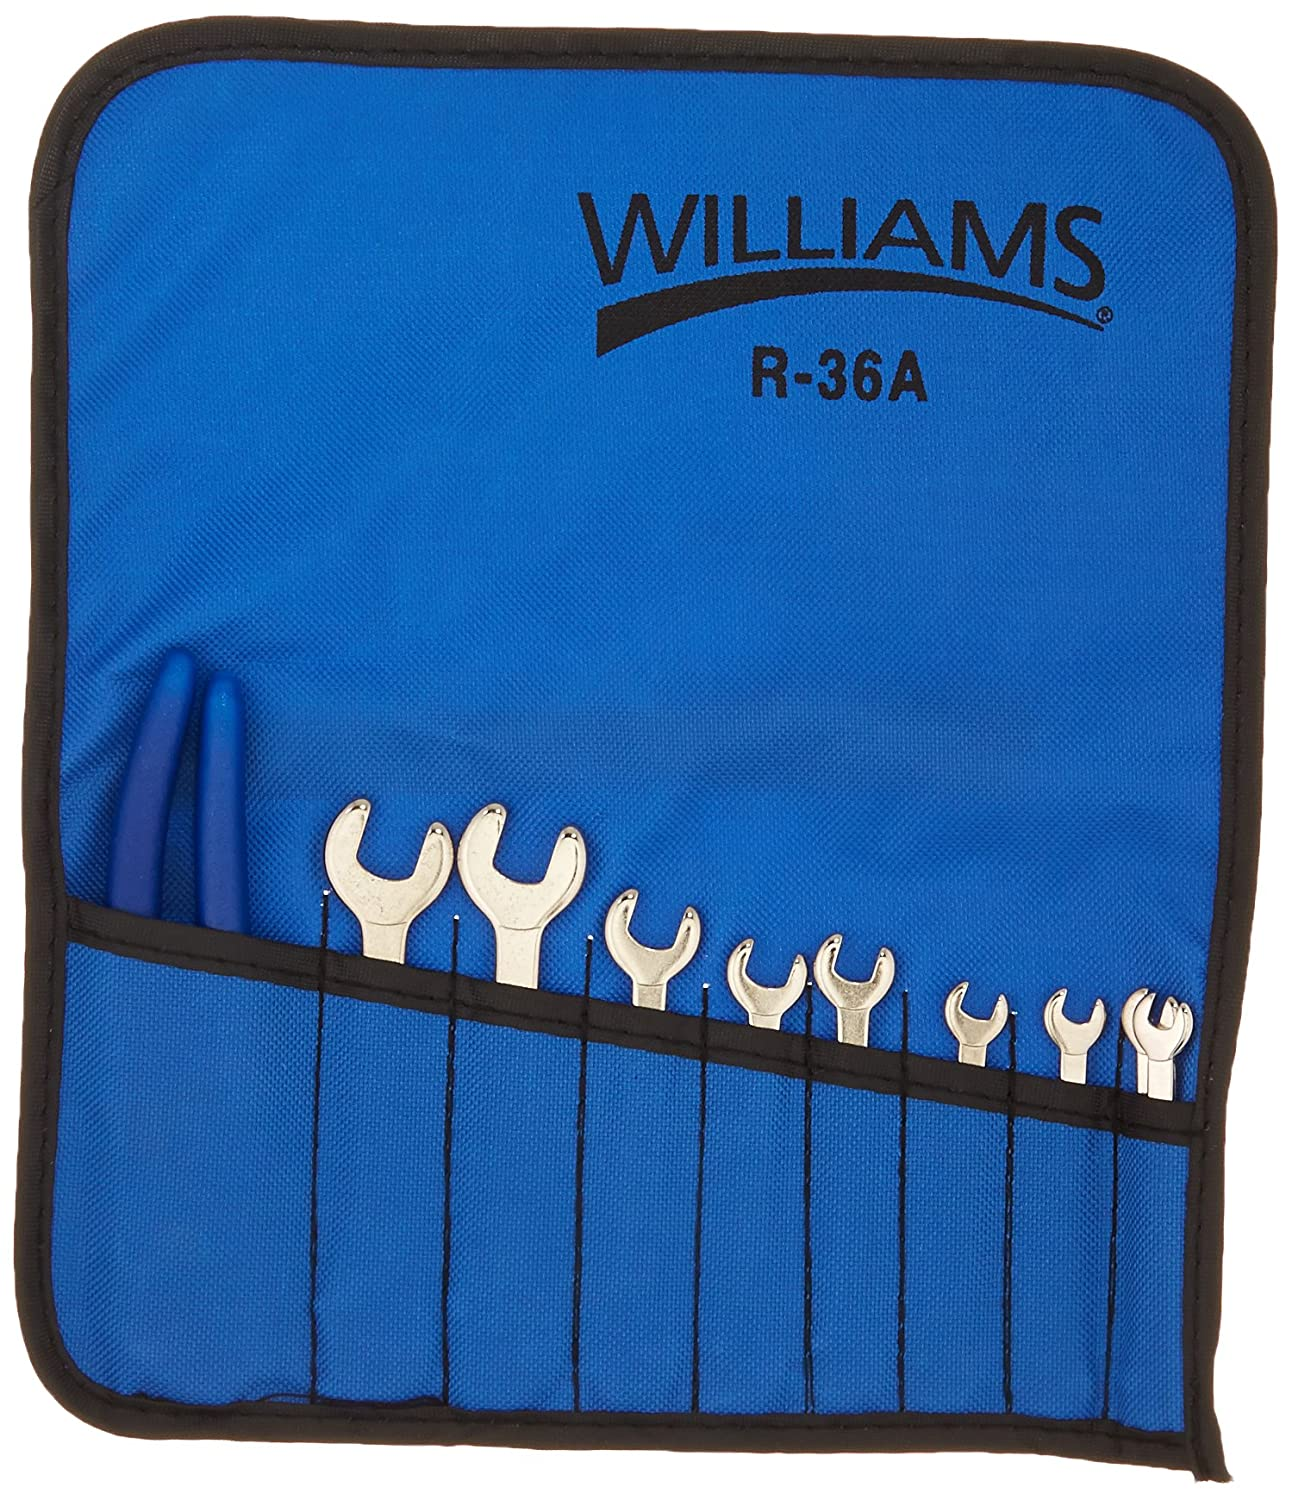 10-Piece Williams MWS-1110 Open End Wrench and Plier Set